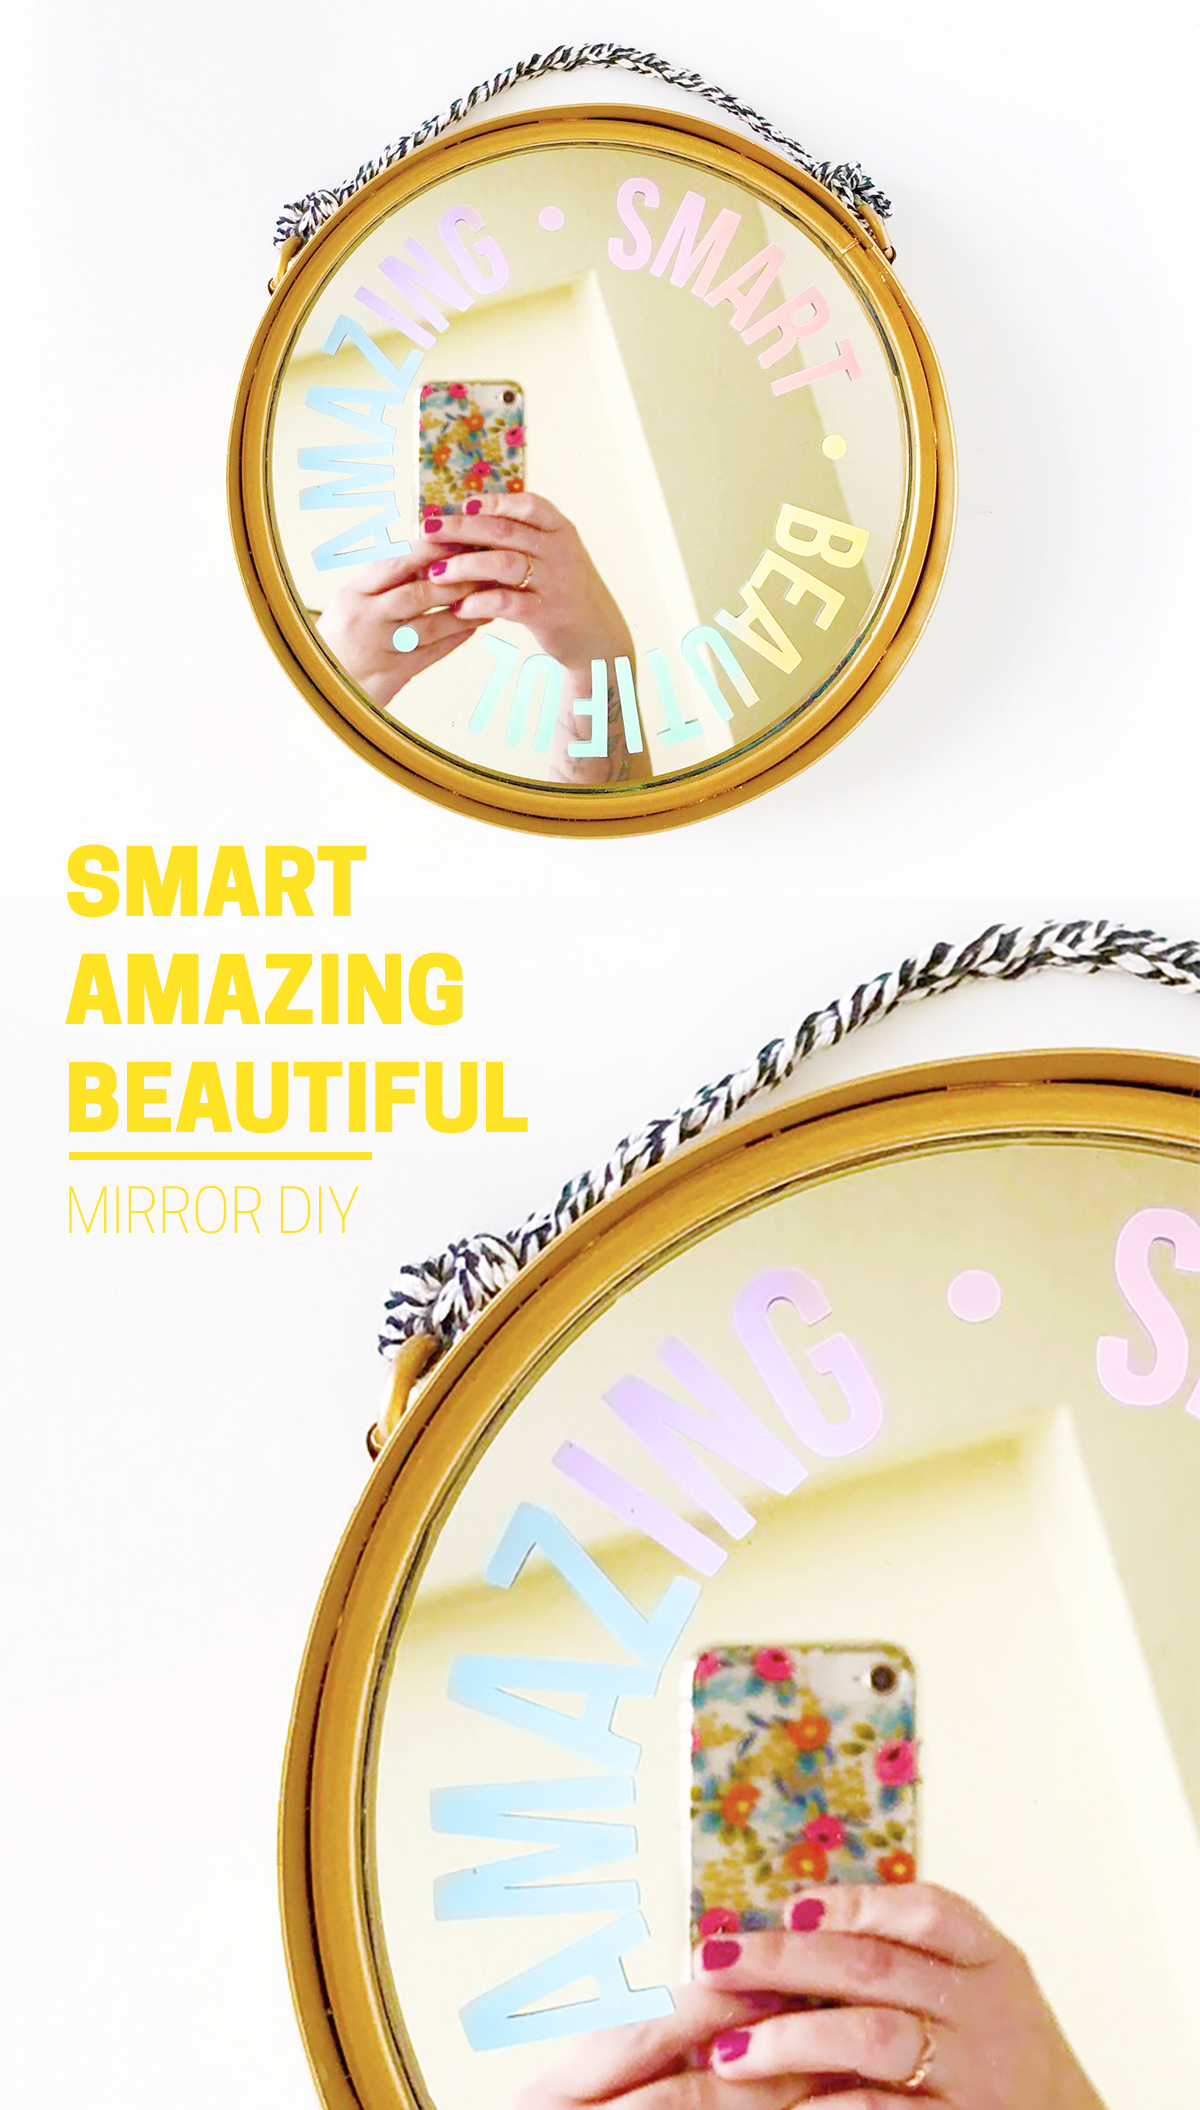 SMART BEAUTIFUL AMAZING Inspirational Mirror